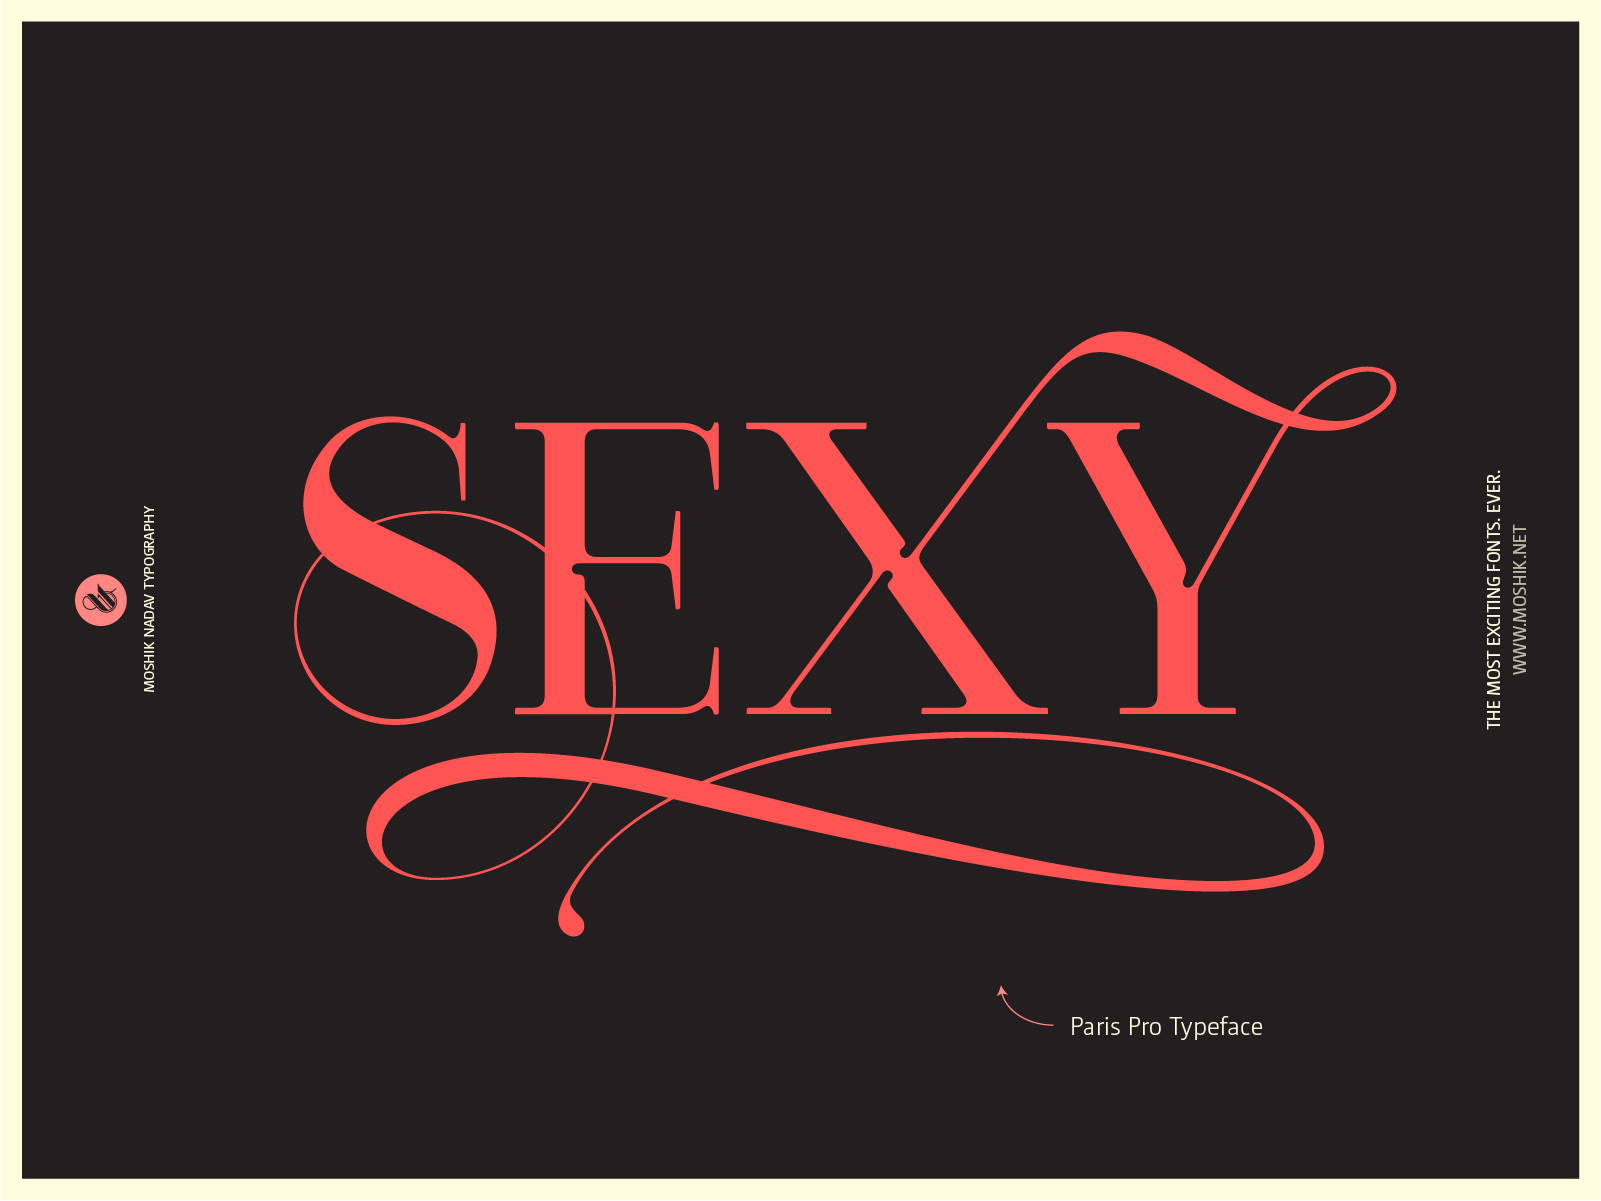 Sexy, Paris Pro Typeface, fashion fonts, fashion typography, vogue fonts, must have fonts for fashion, best fonts 2021, must have fonts 2021, Fashion logos, vogue fonts, fashion magazine fonts, sexy logos, sexy fashion logo, fashion ligatures, Paris Pro Typeface